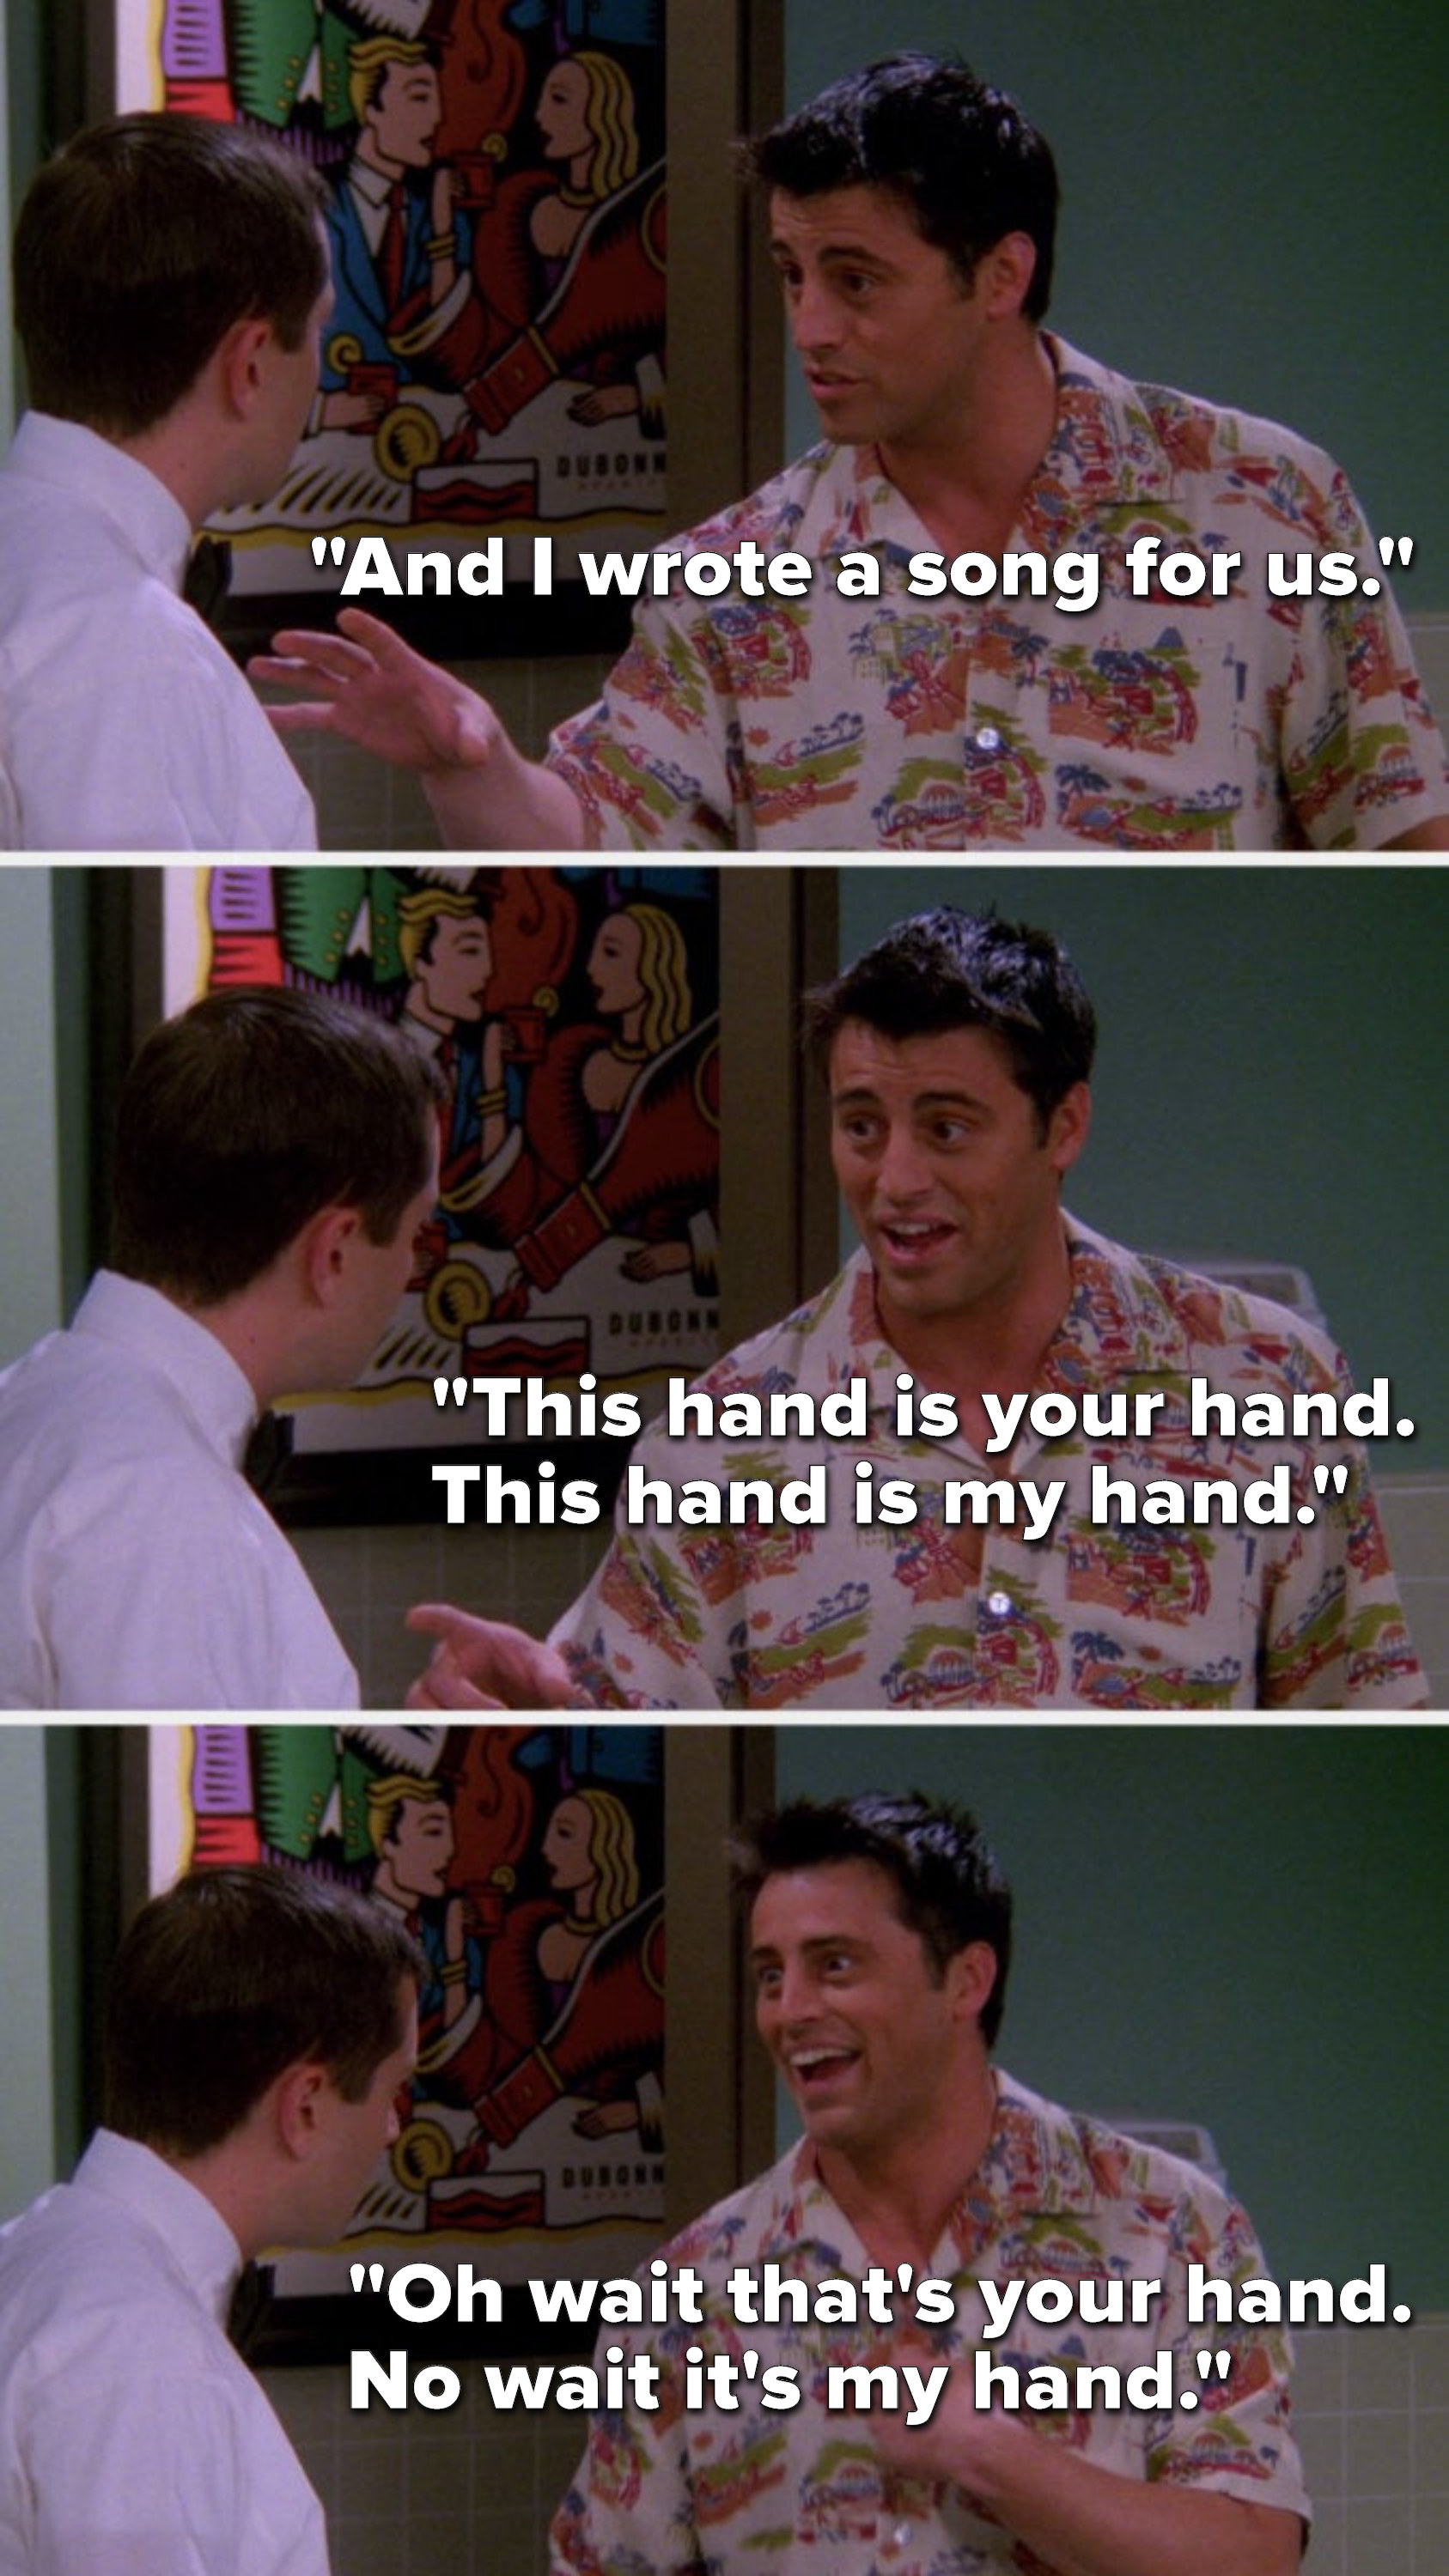 """Joey says, """"And I wrote a song for us, this hand is your hand, this hand is my hand, oh wait that's your hand, no wait it's my hand"""""""